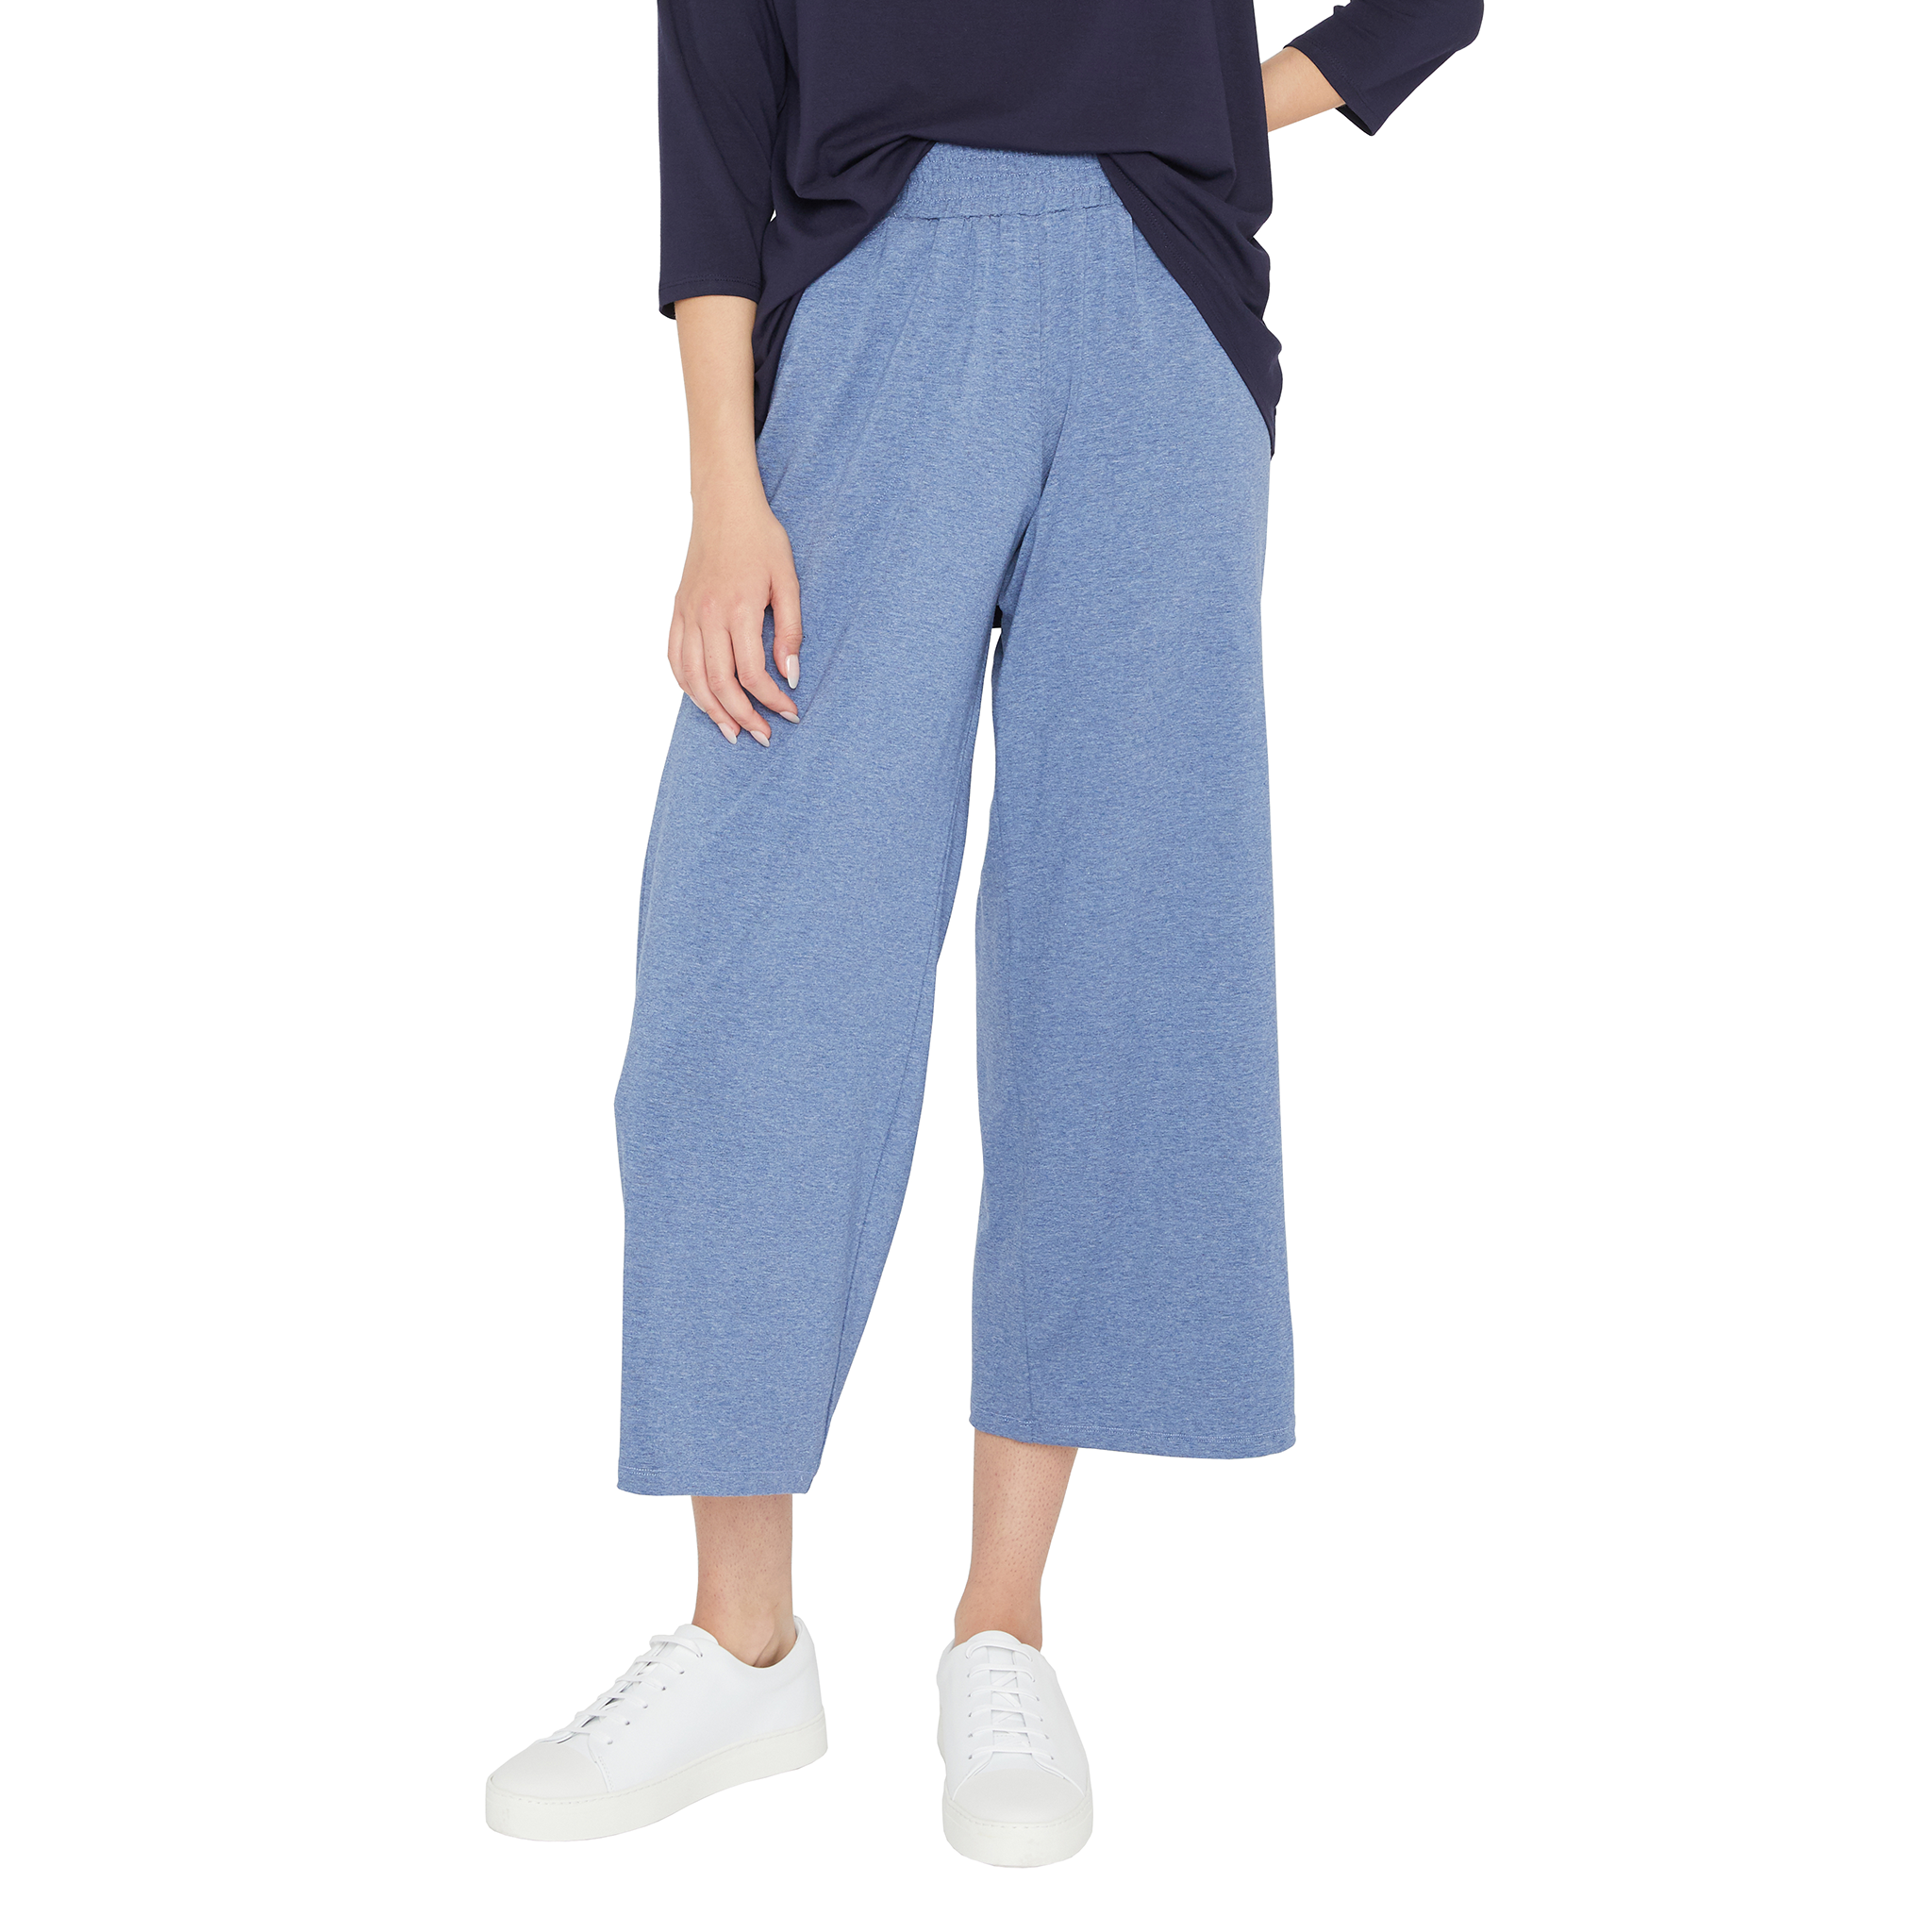 Aida Pants - Sale